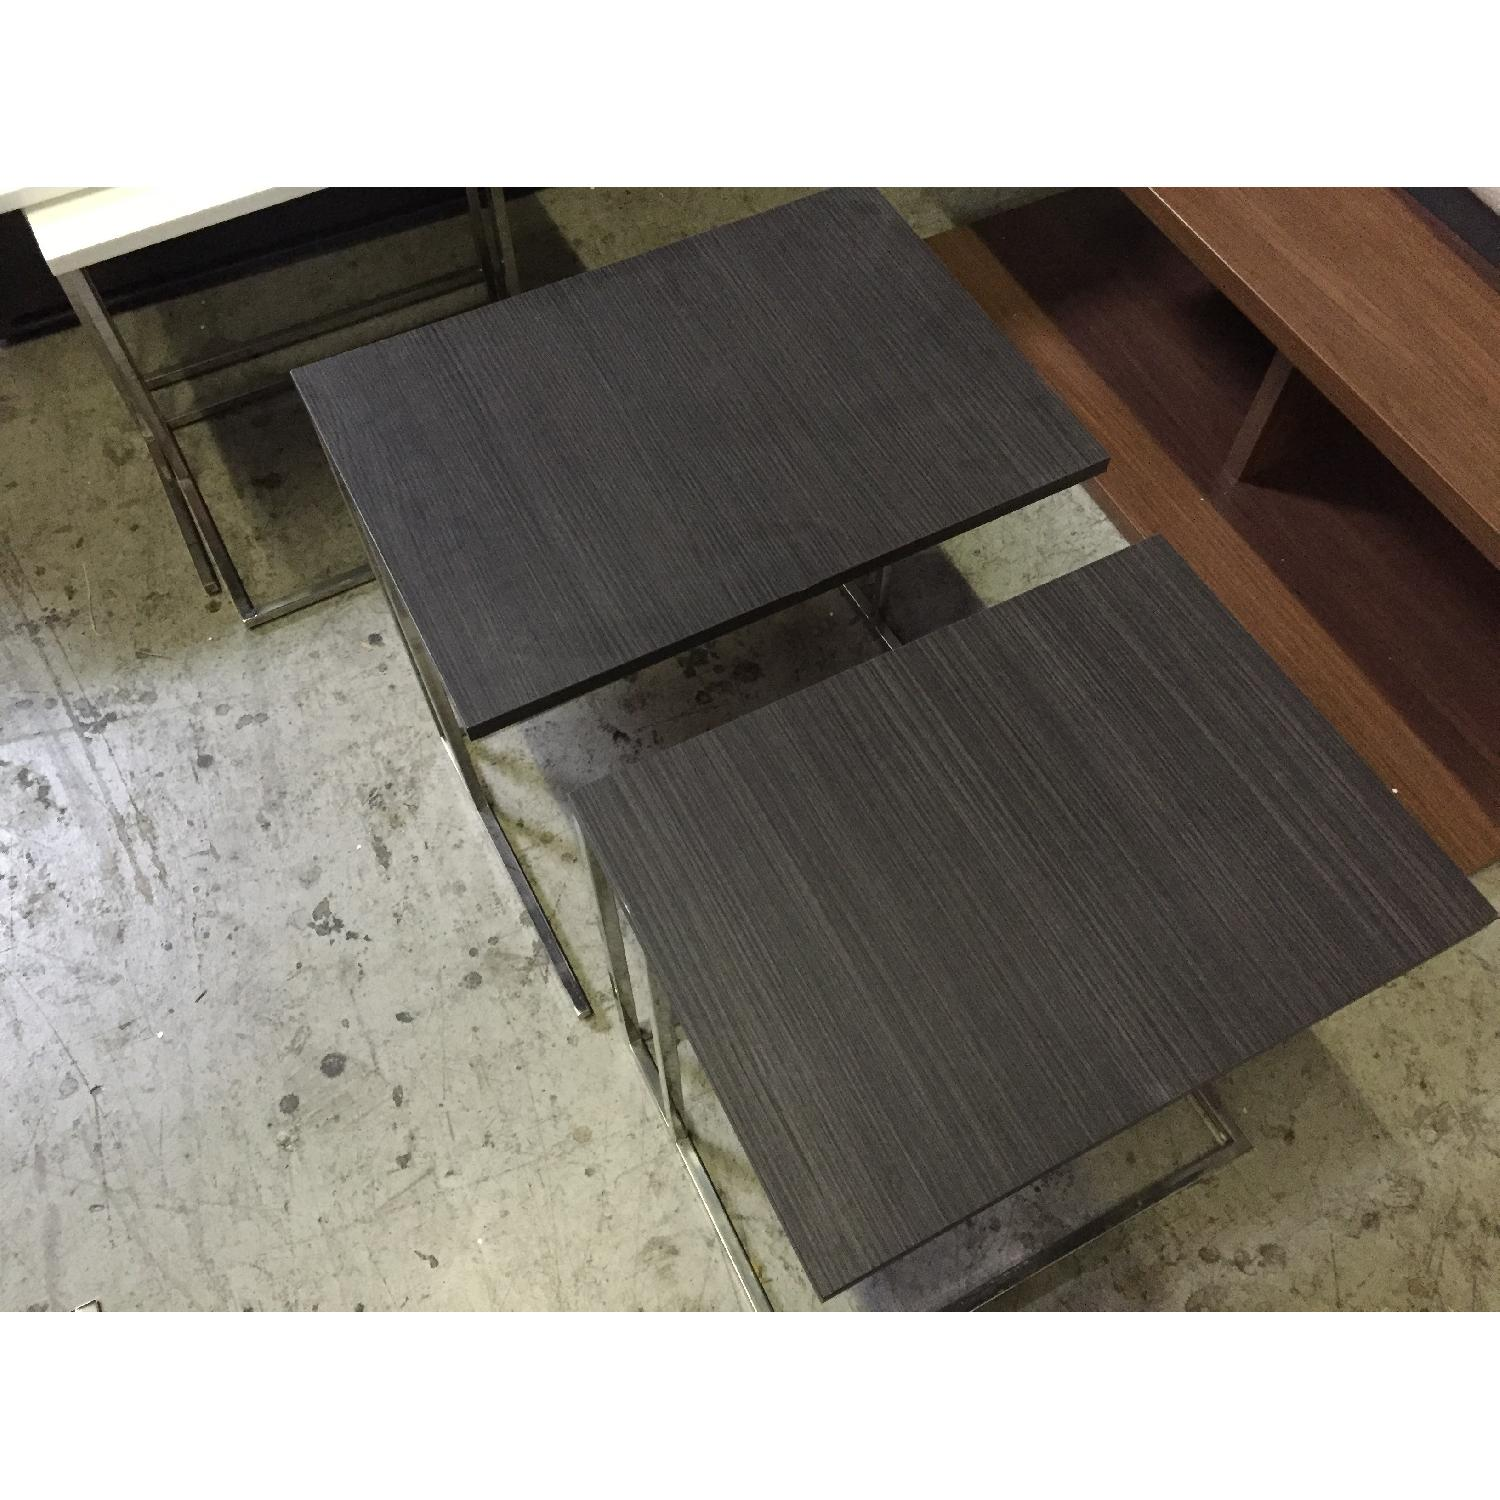 Lazzoni Brown Wood Nesting Tables - image-8